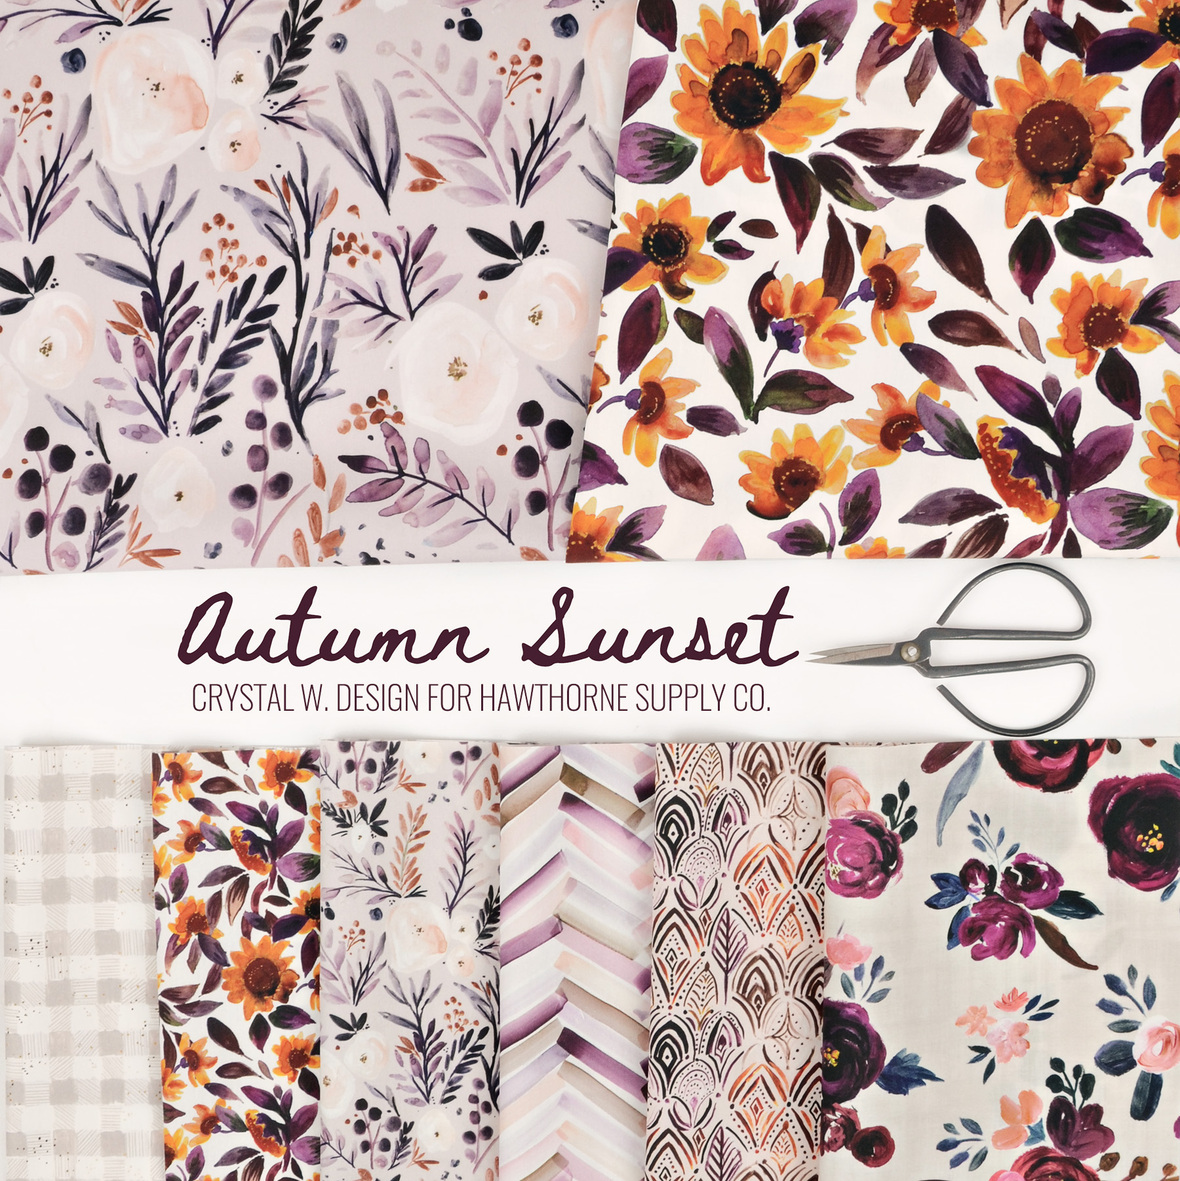 2 Autumn Sunset by Crystal Walen Design for Hawthorne Supply Co